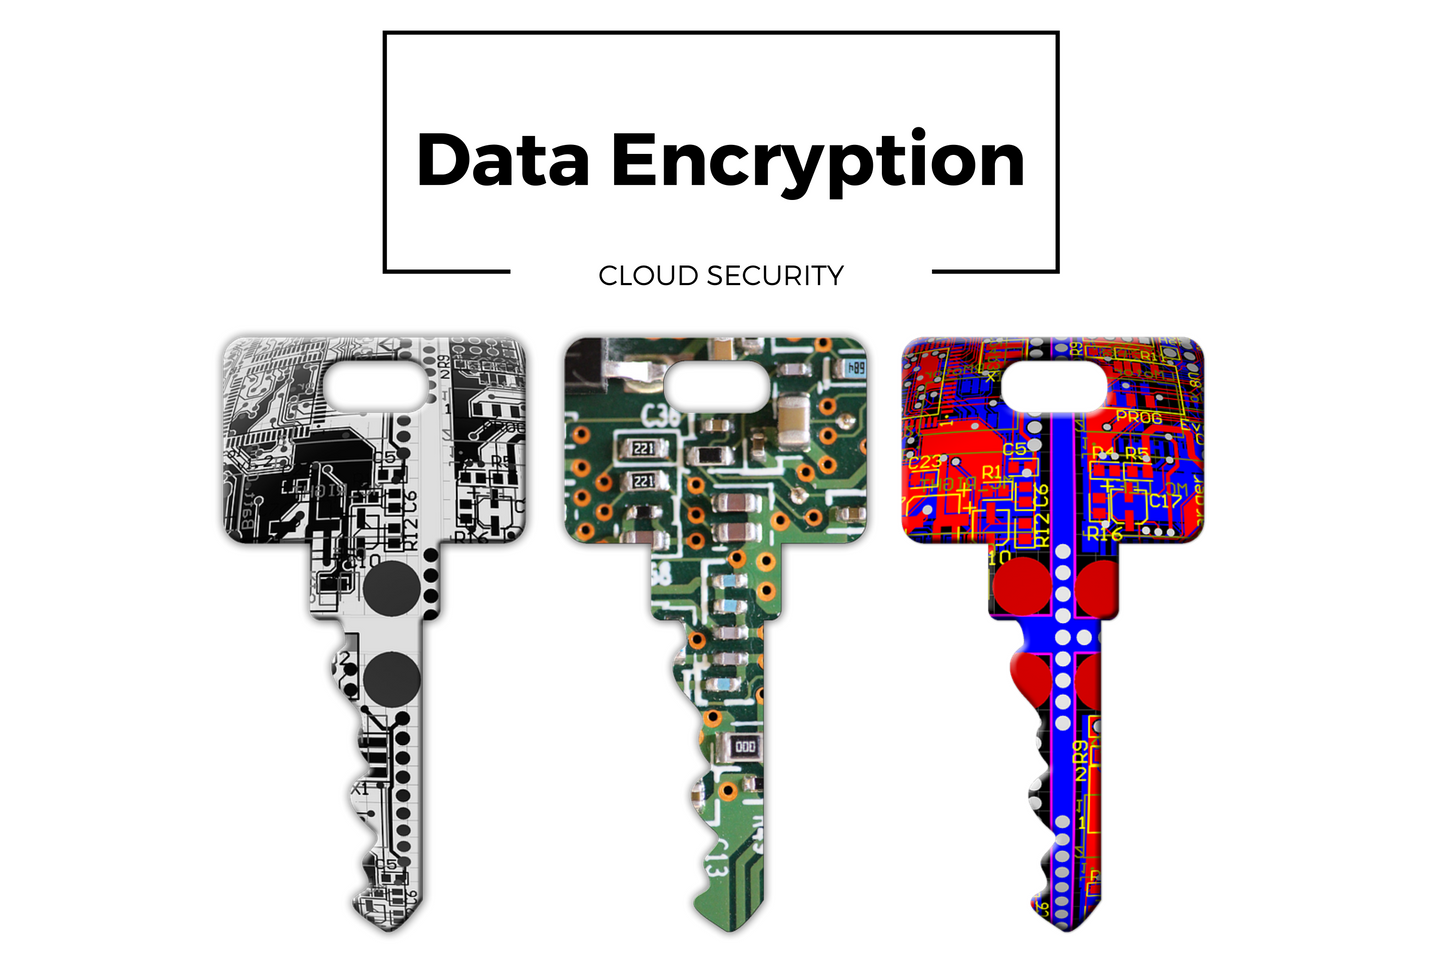 Data Encryption - Cloud Security